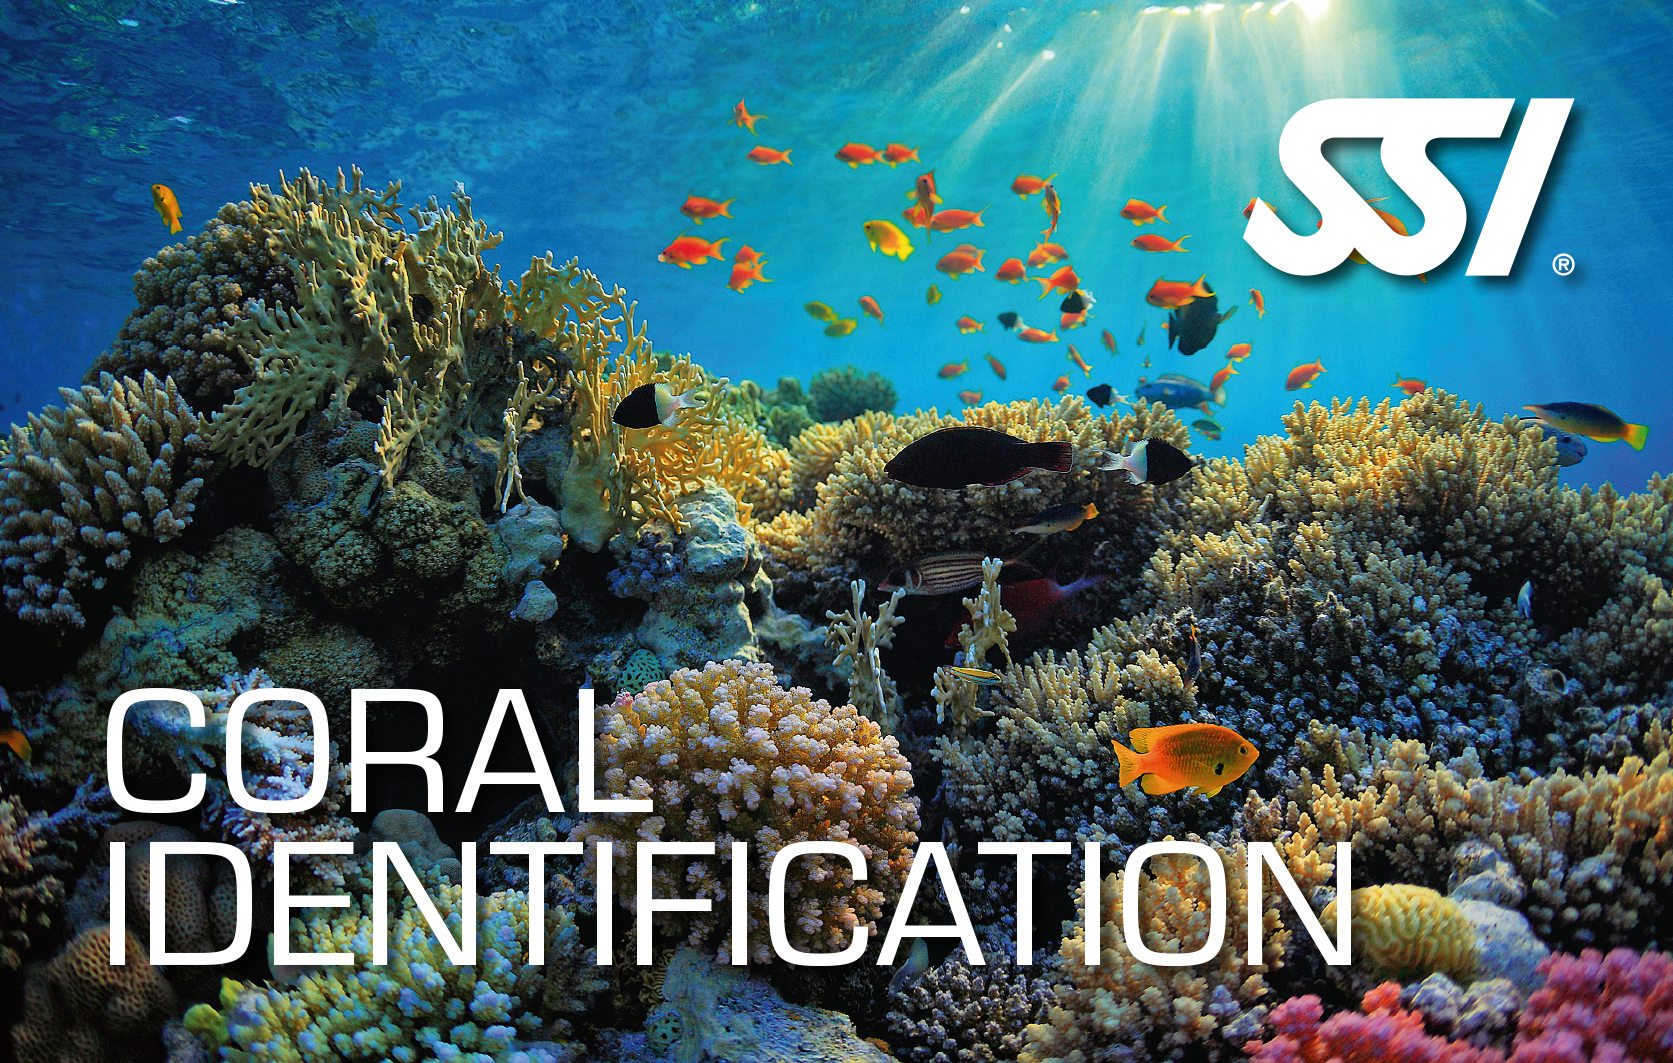 SSI Coral Identification | SSI Coral Identification Course | Coral Identification | Specialty Course | Diving Course